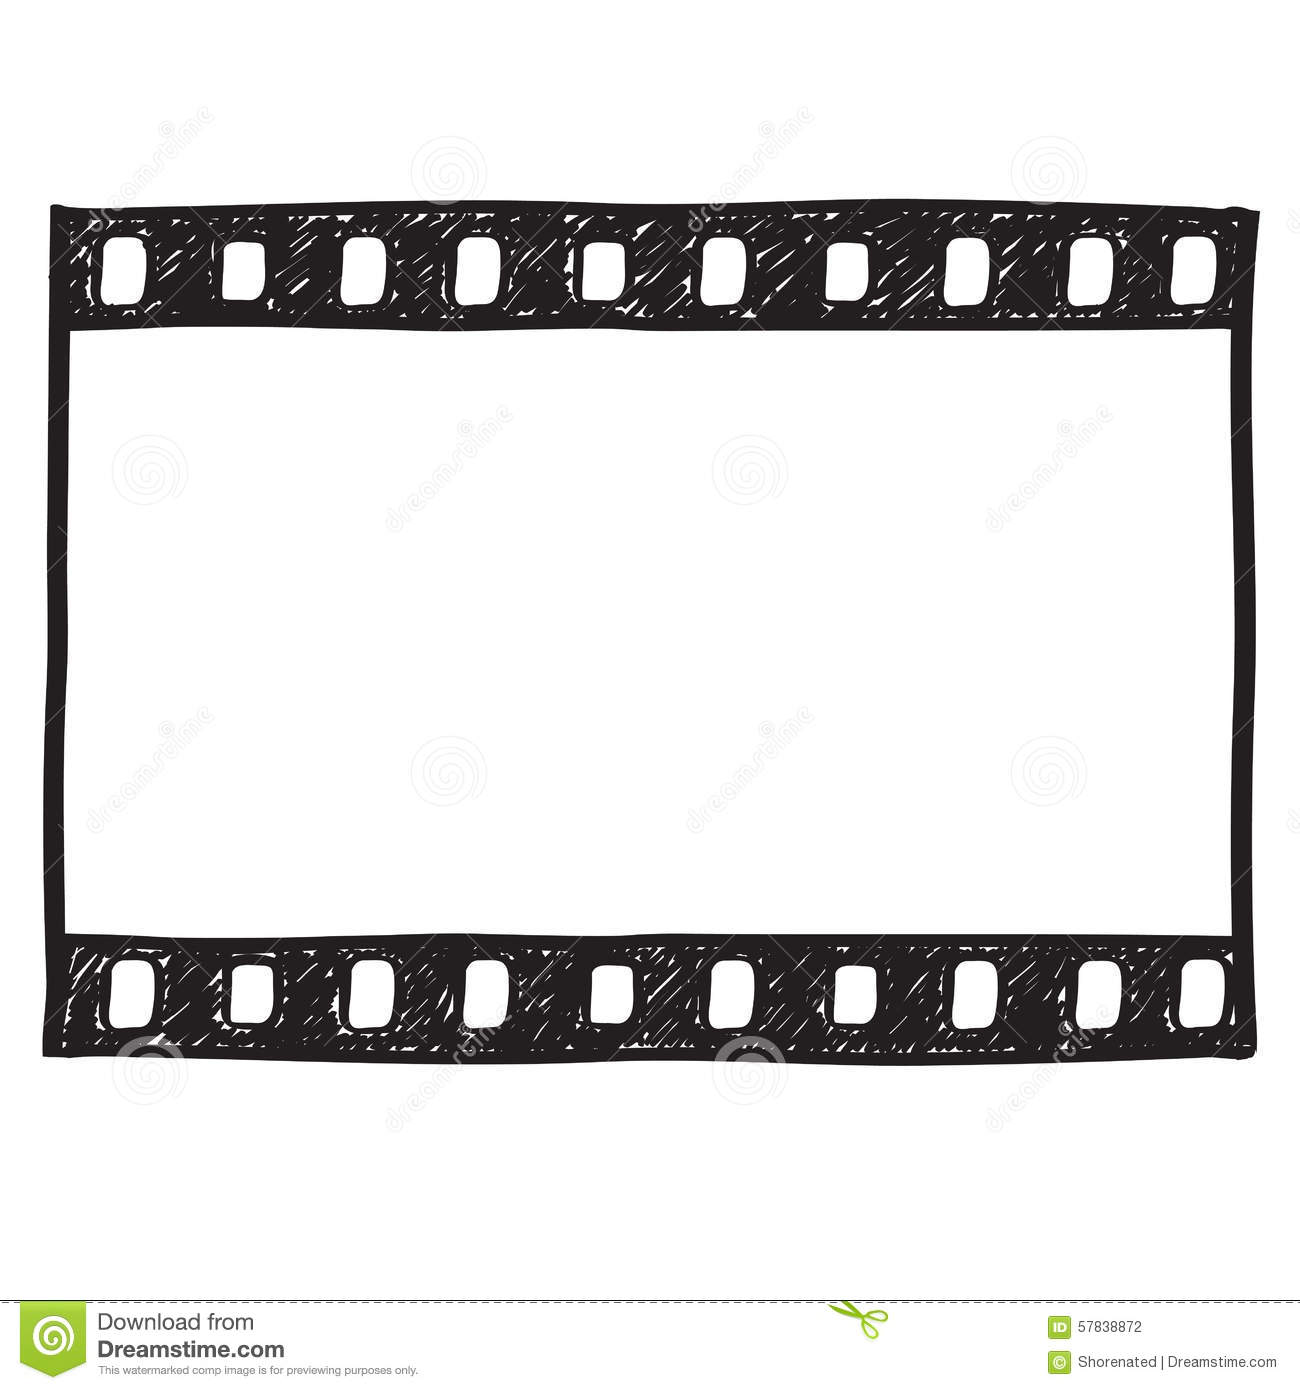 Grunge Film Frame effect stock illustration. Illustration of movie ...